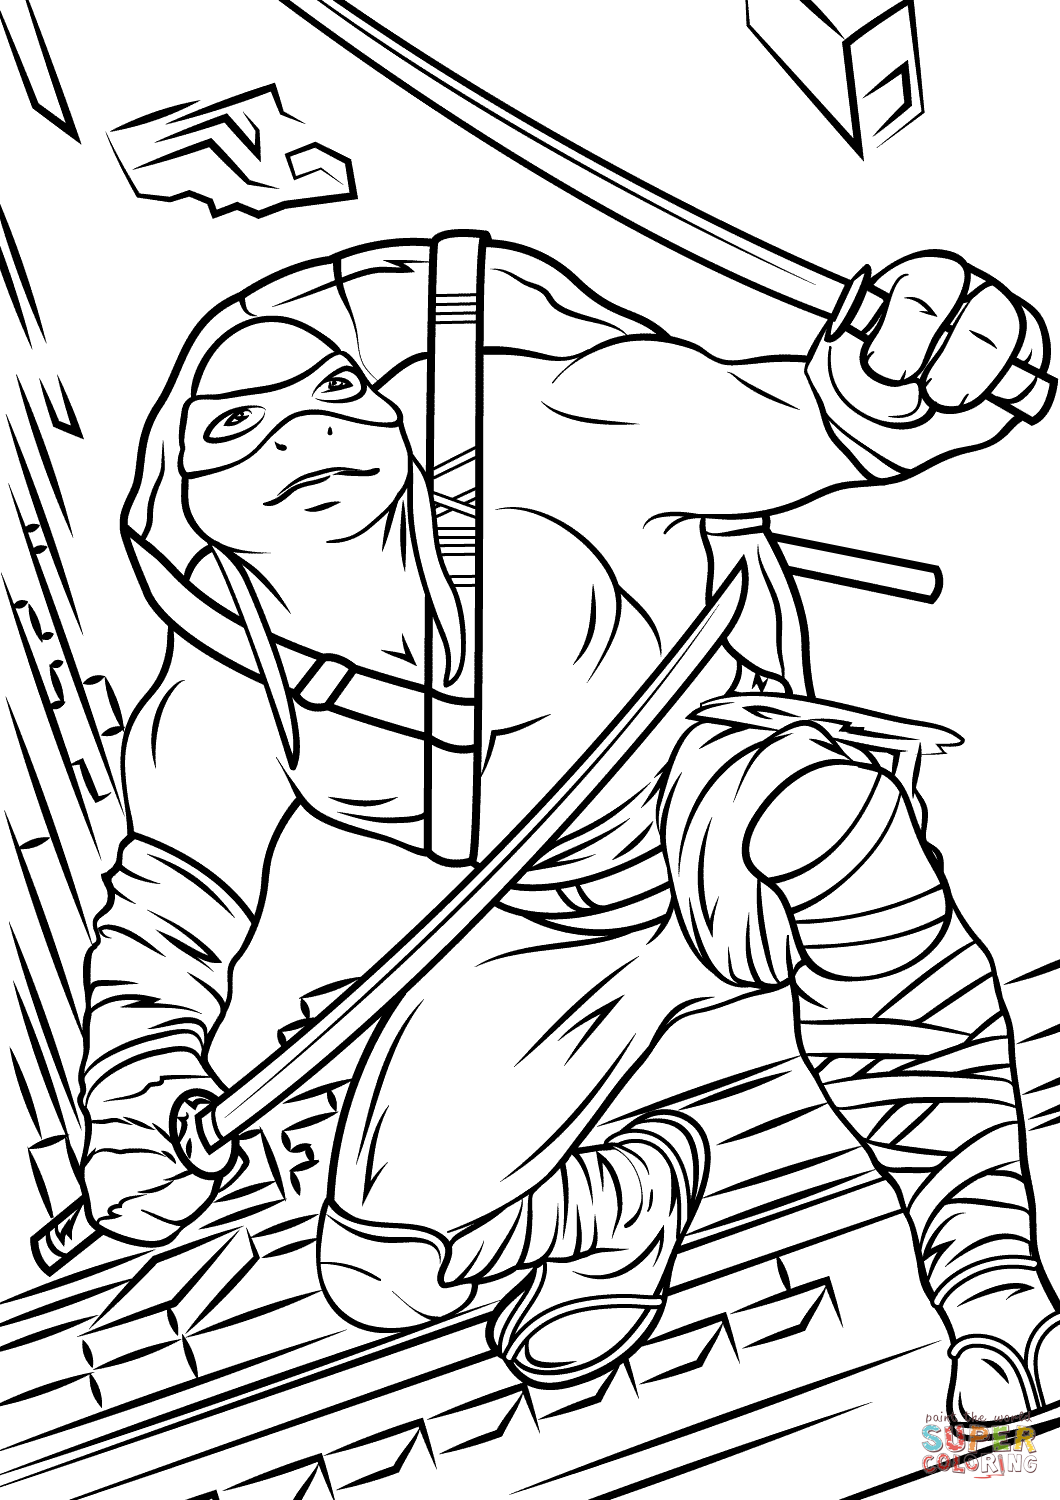 tmnt coloring pages on pinterest - photo#47